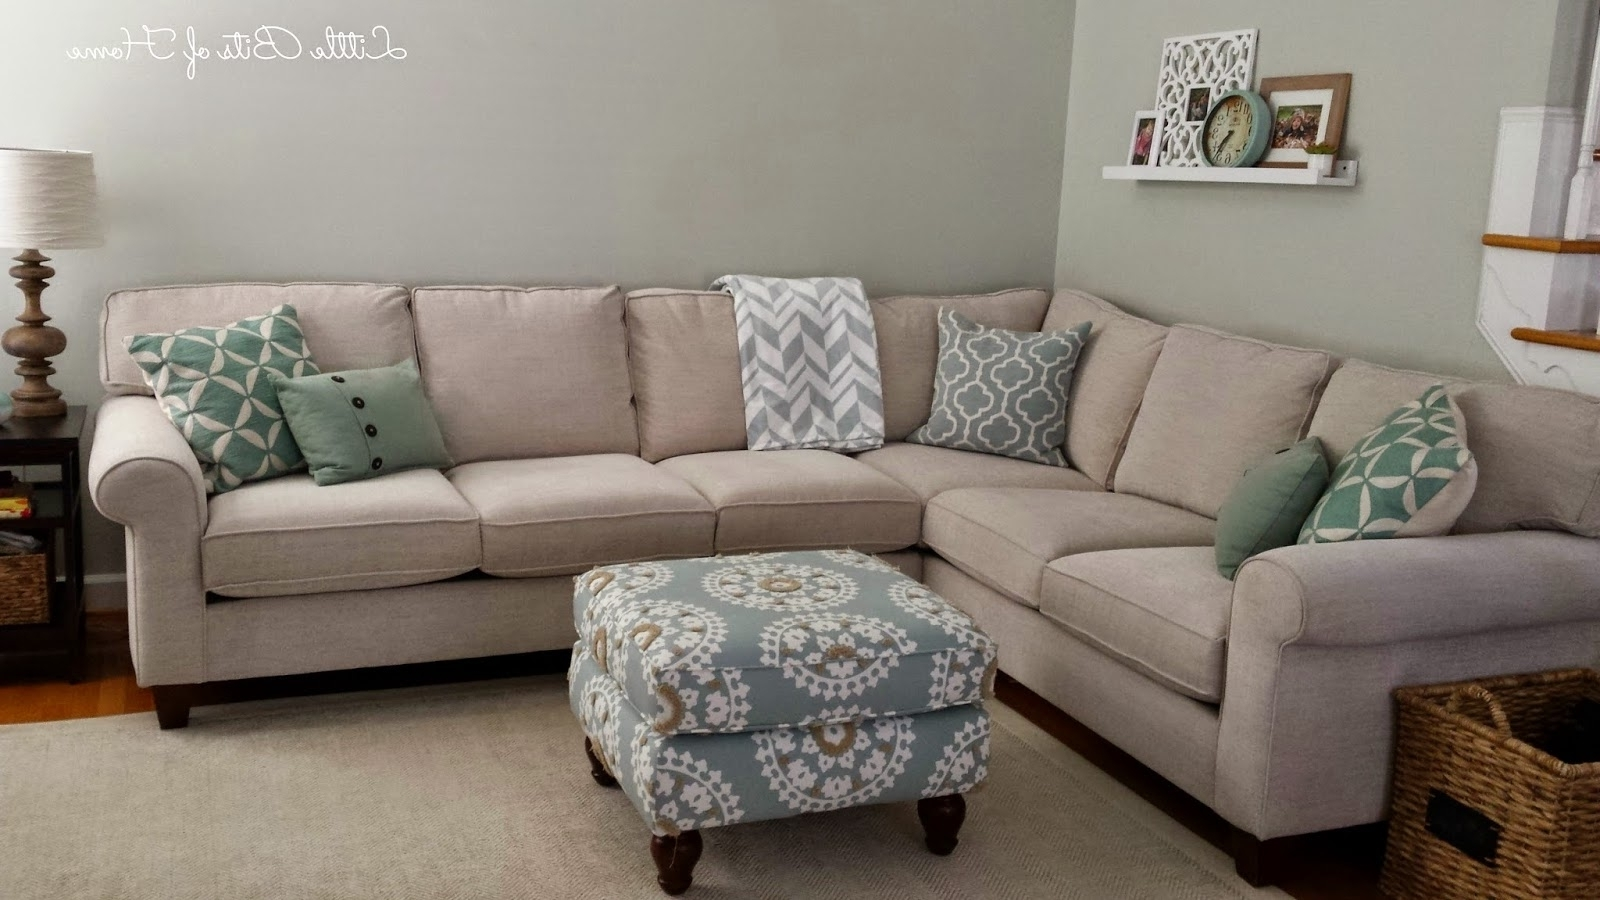 Famous Small Sectional Sofa Tulsa • Sectional Sofa Inside Tulsa Sectional Sofas (View 20 of 20)